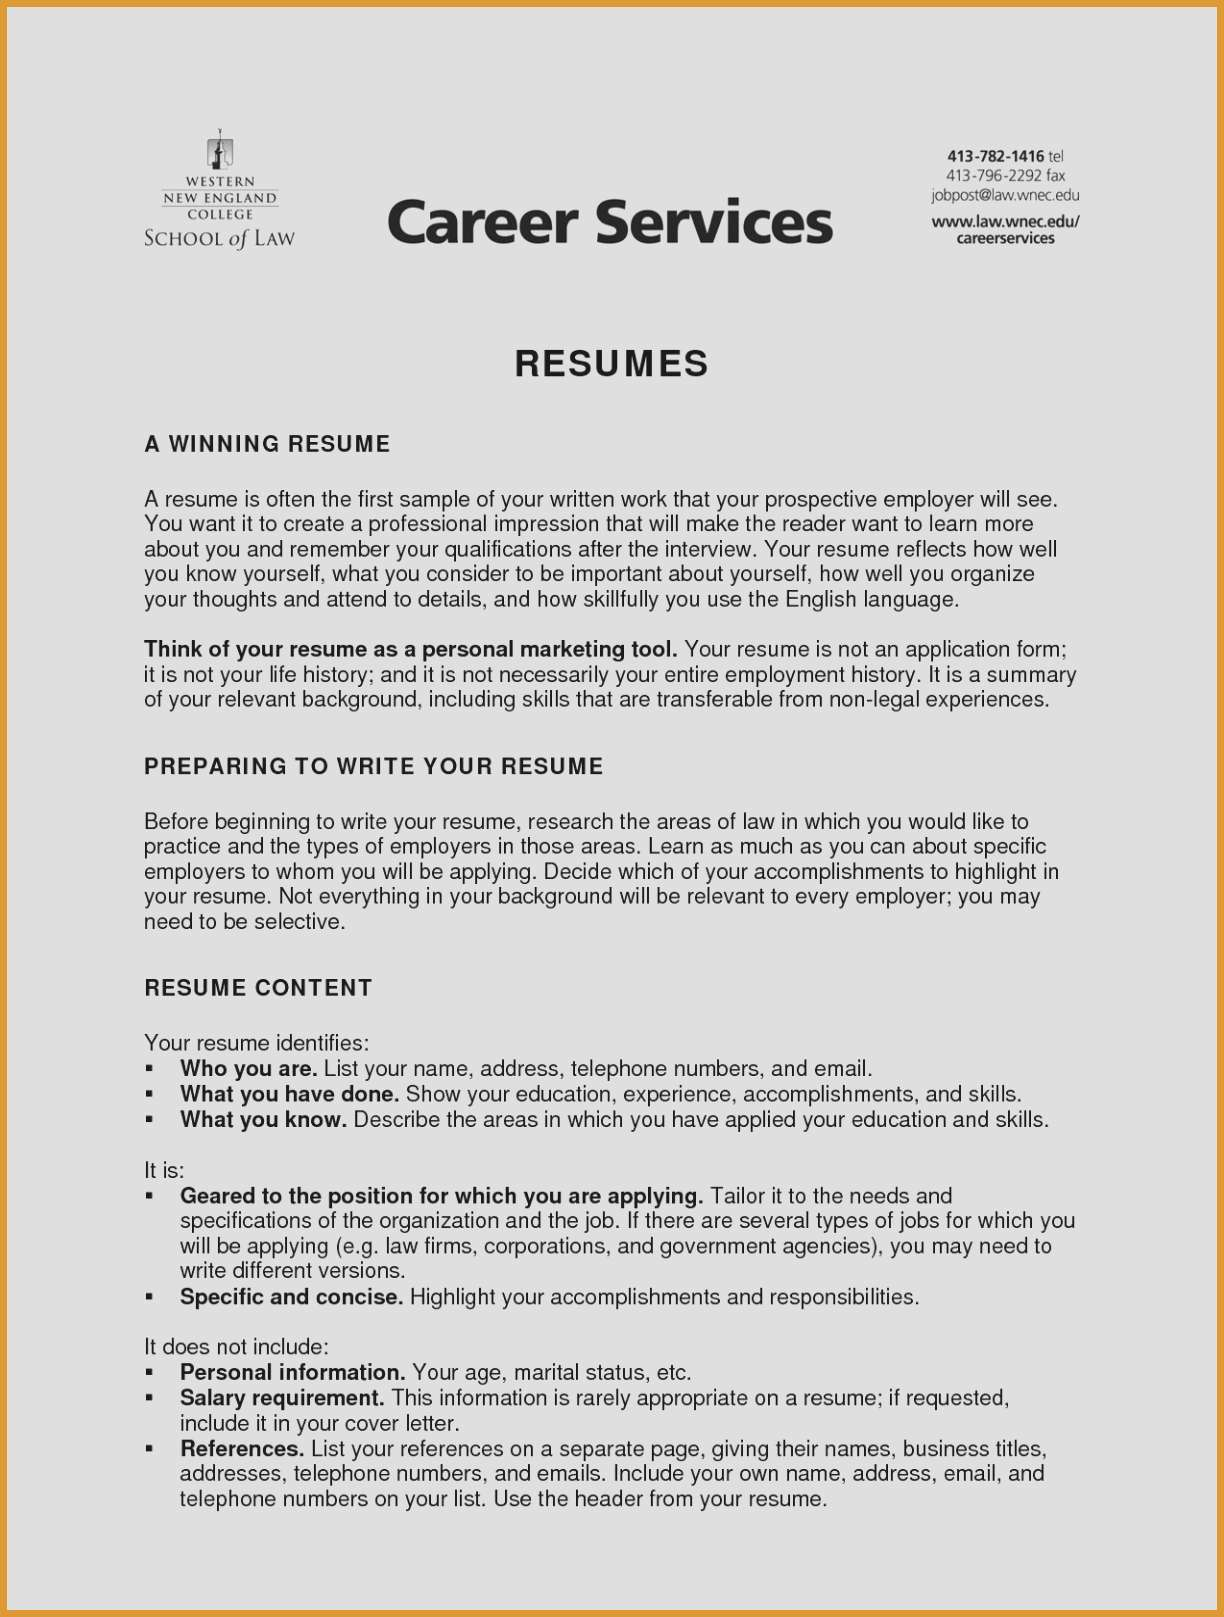 Create Letter Template - Write Resumes Proper Resume Cover Letter Proper Cover Letter How to